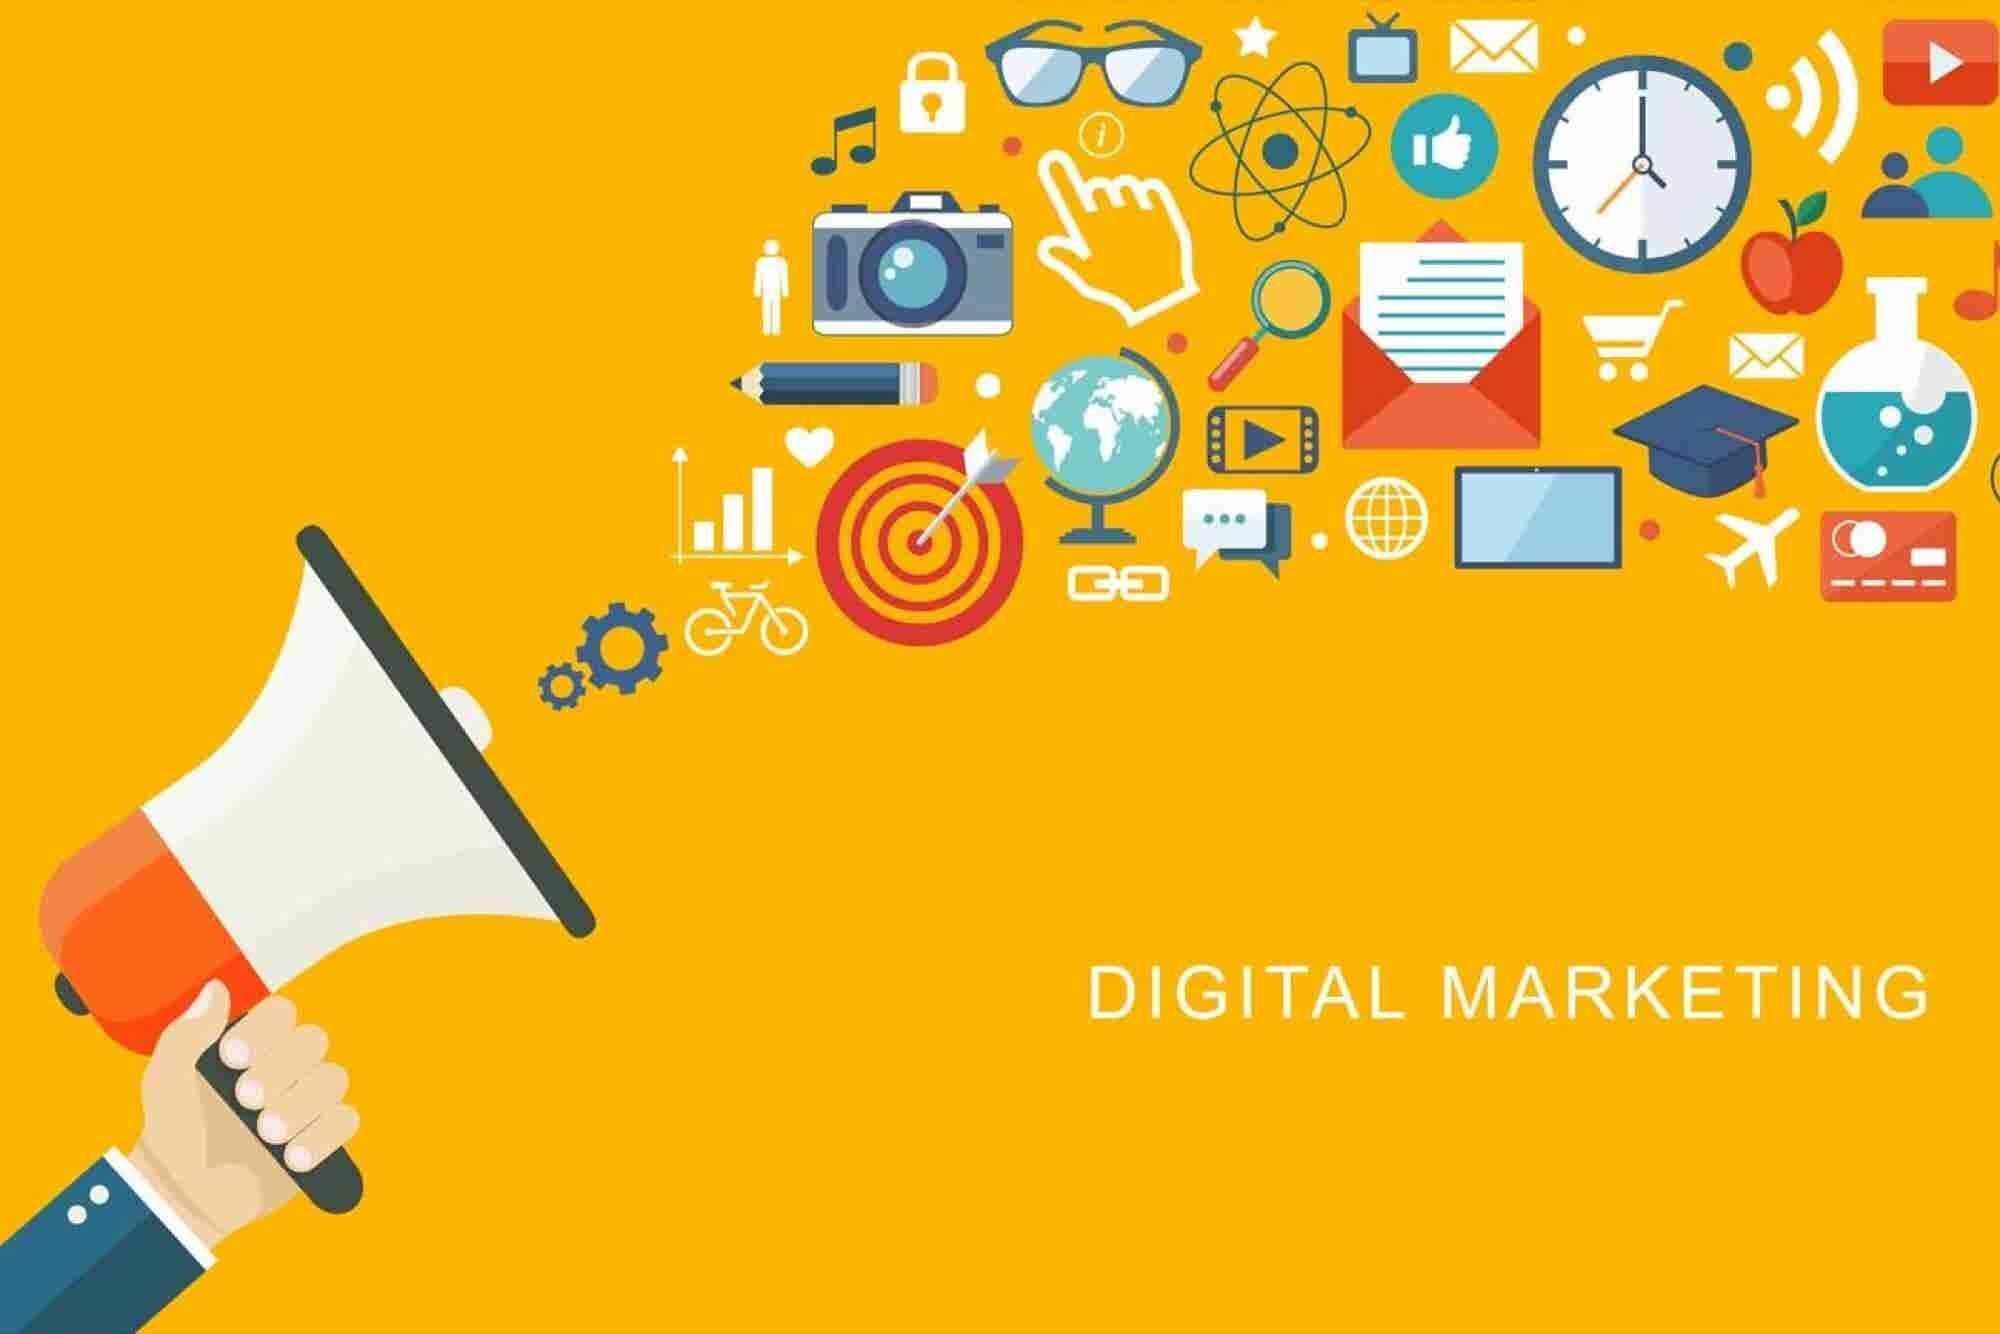 #8 Reasons Your Business Needs Digital Marketing Services